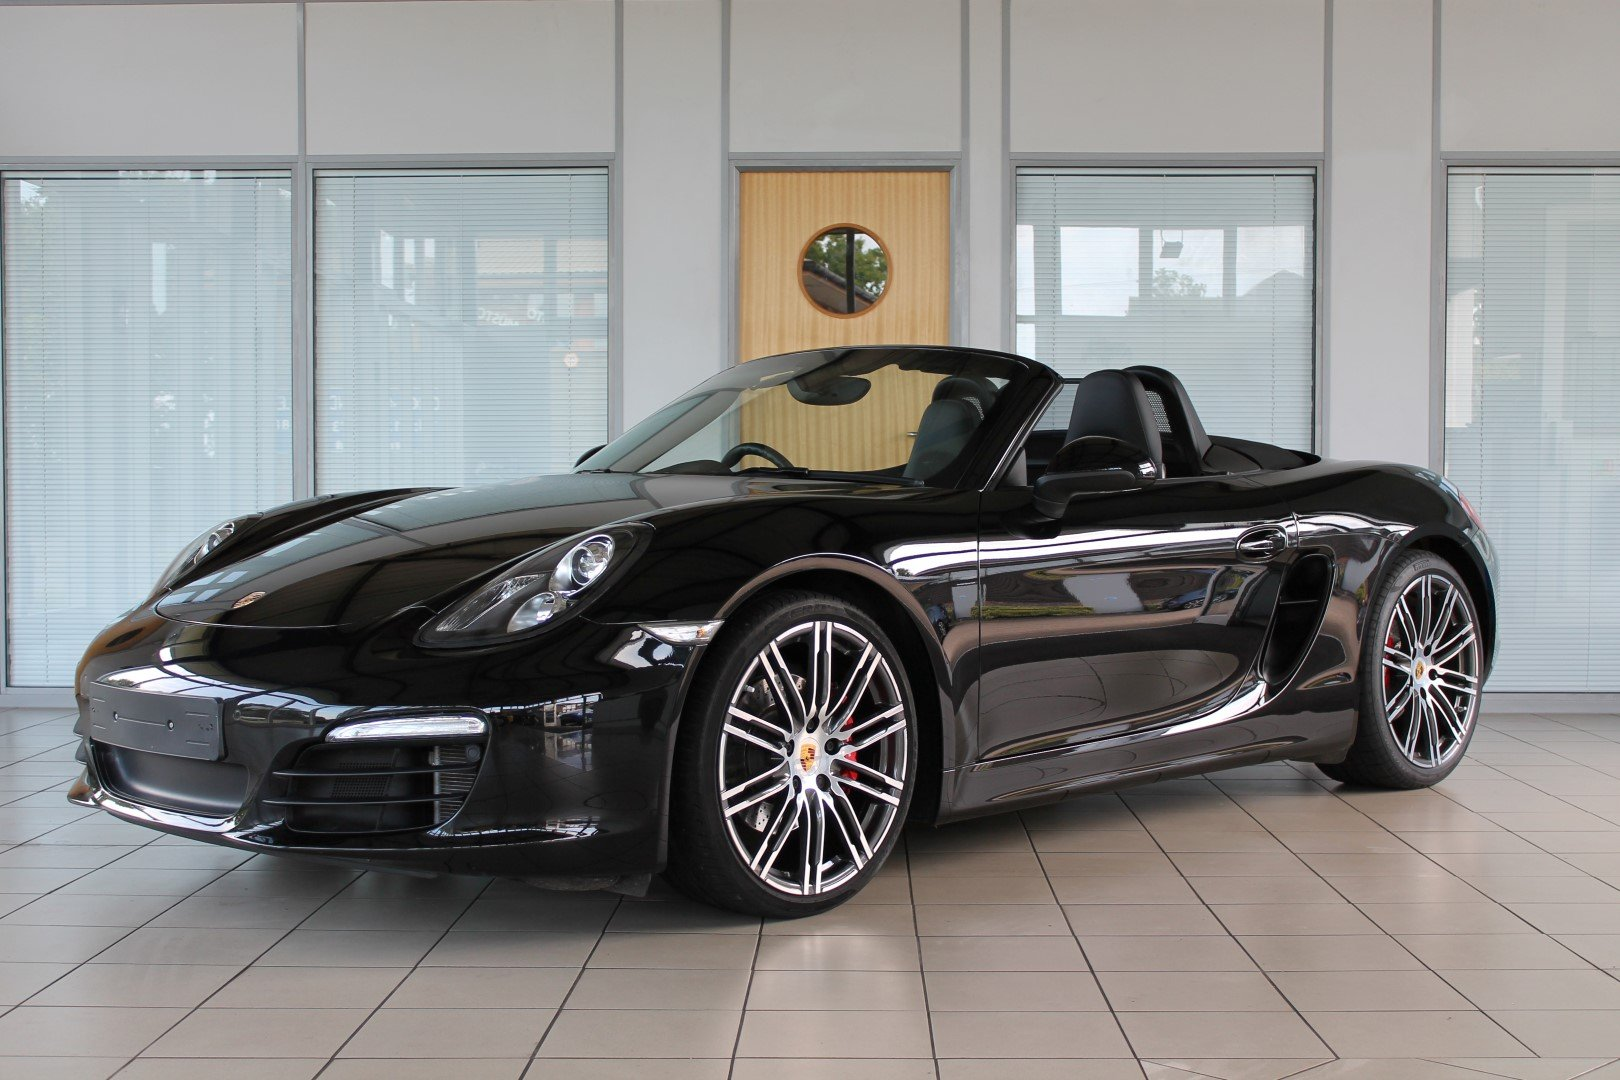 2015 Boxster (981) S 3.4 PDK For Sale (picture 1 of 6)